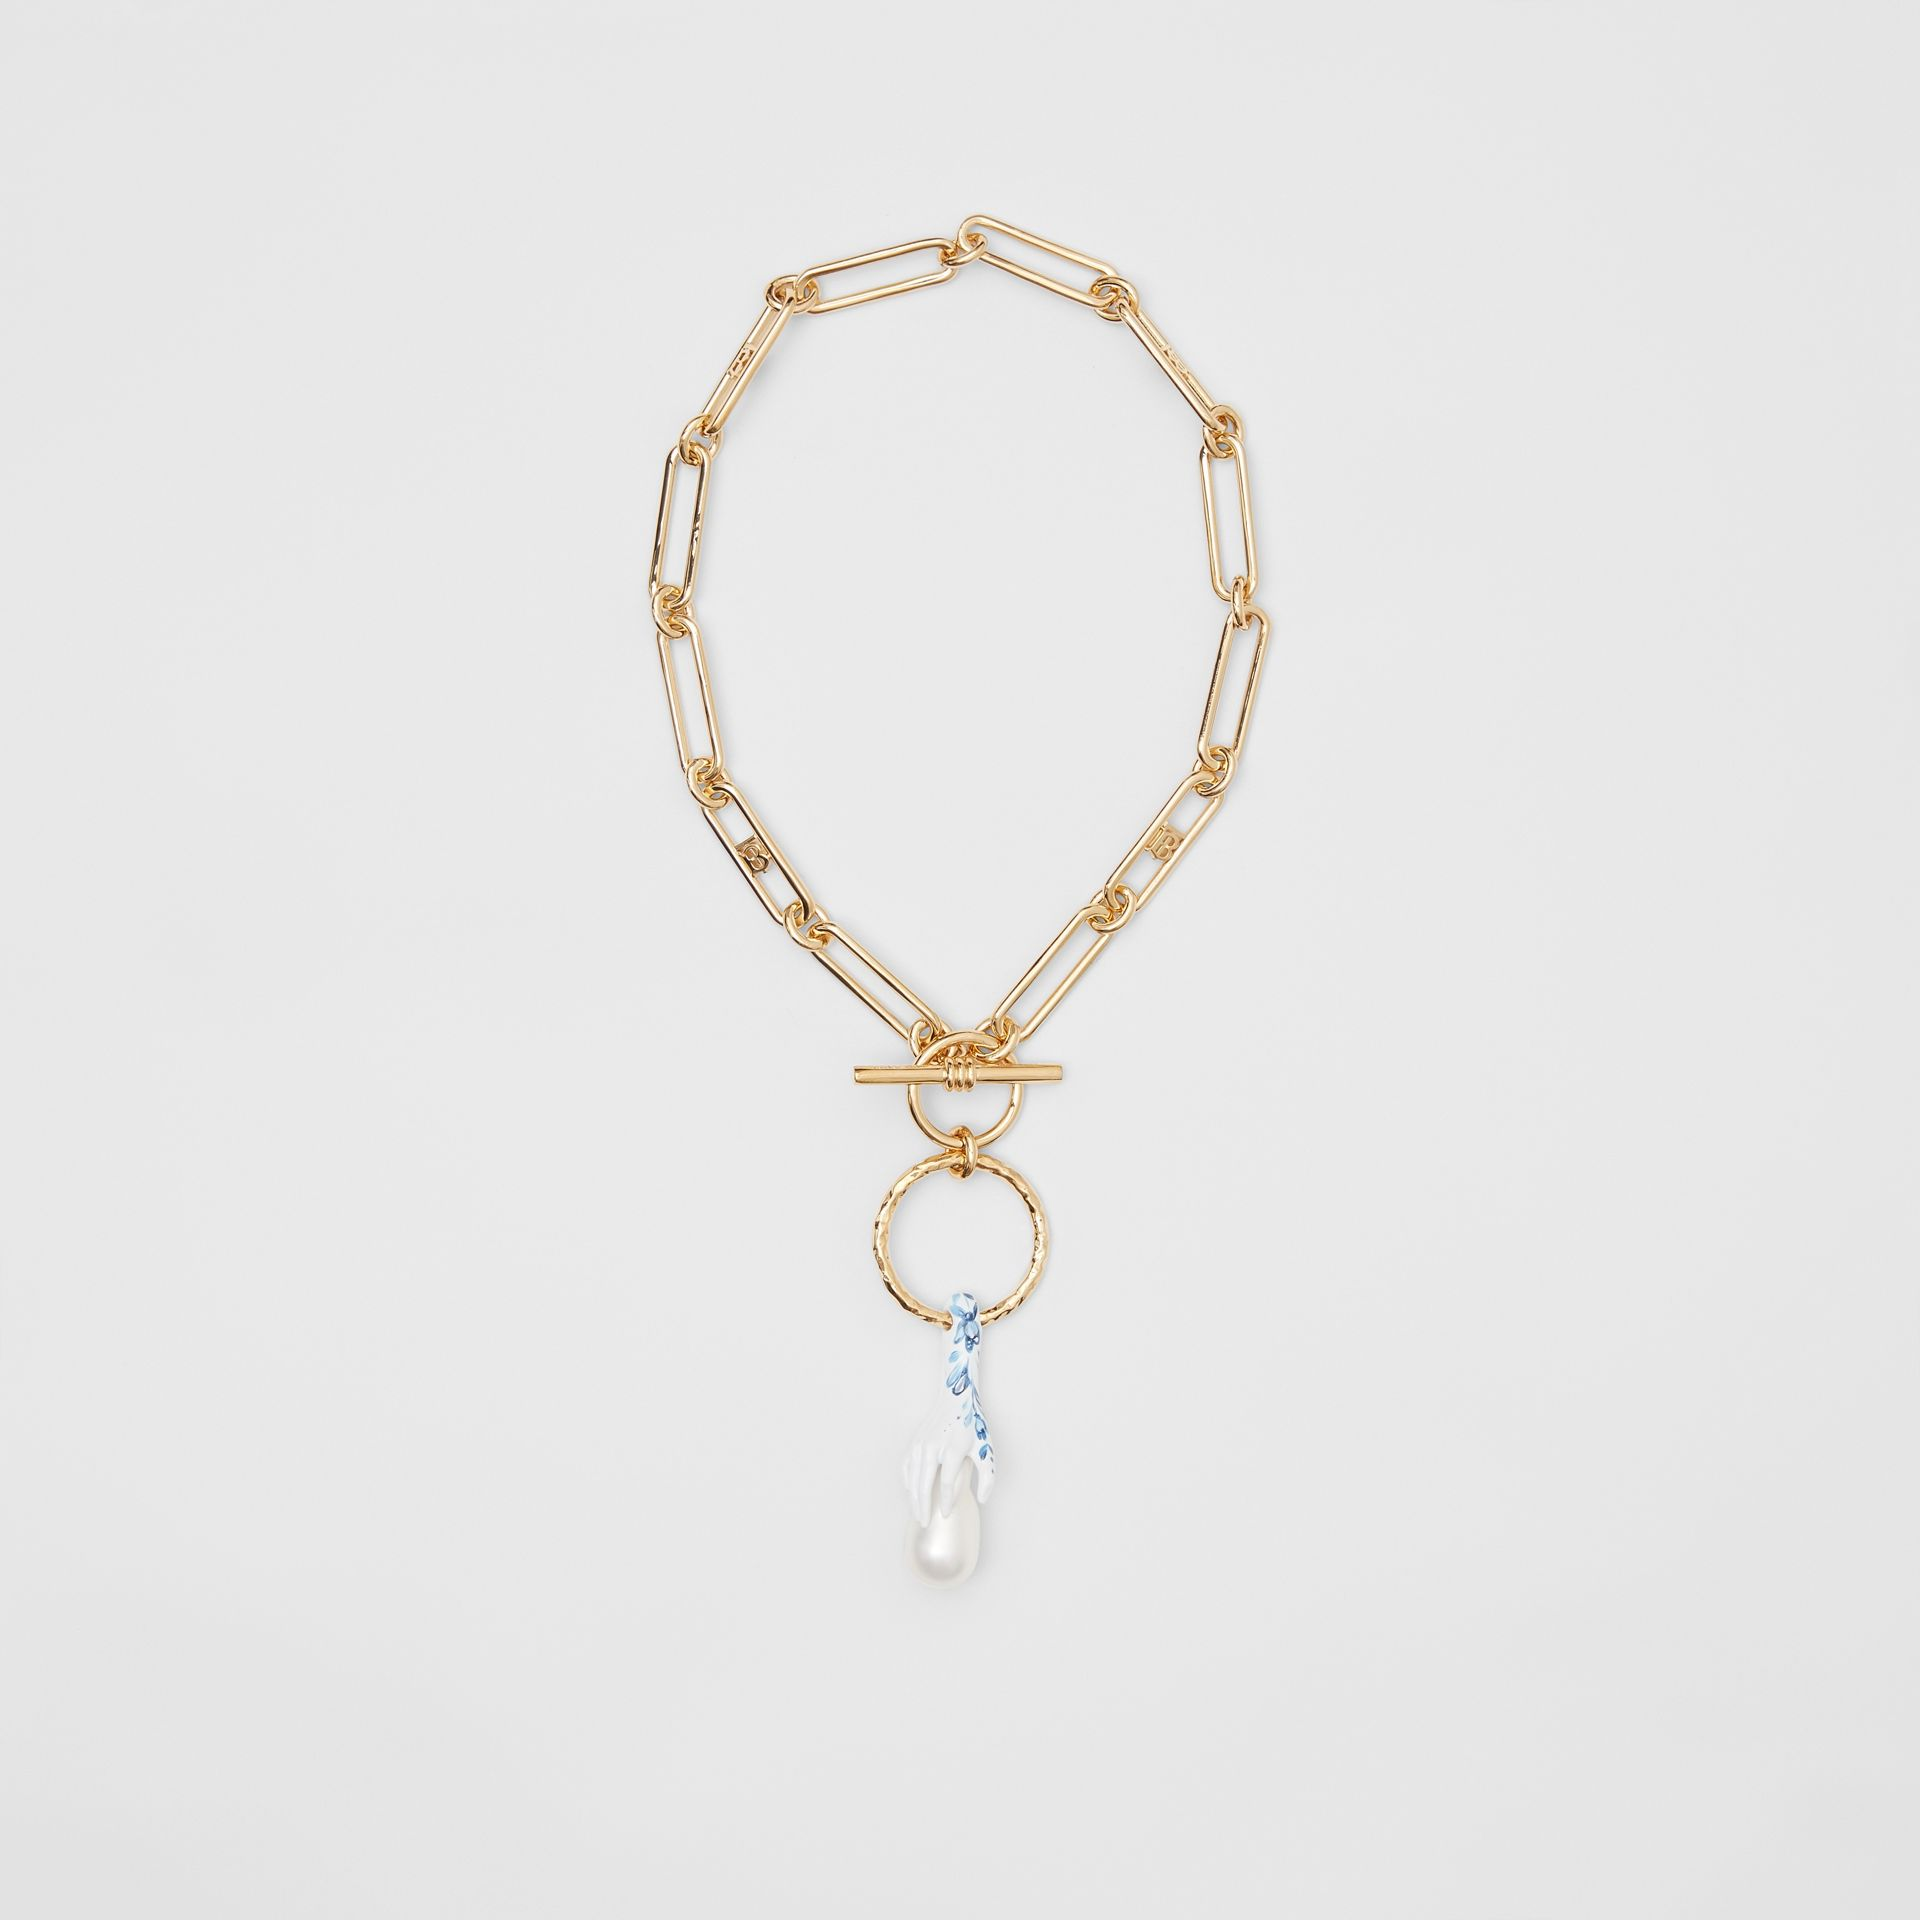 Faux Pearl Detail Gold-plated Chain Necklace in Light Gold/white/blue - Women | Burberry Canada - gallery image 0